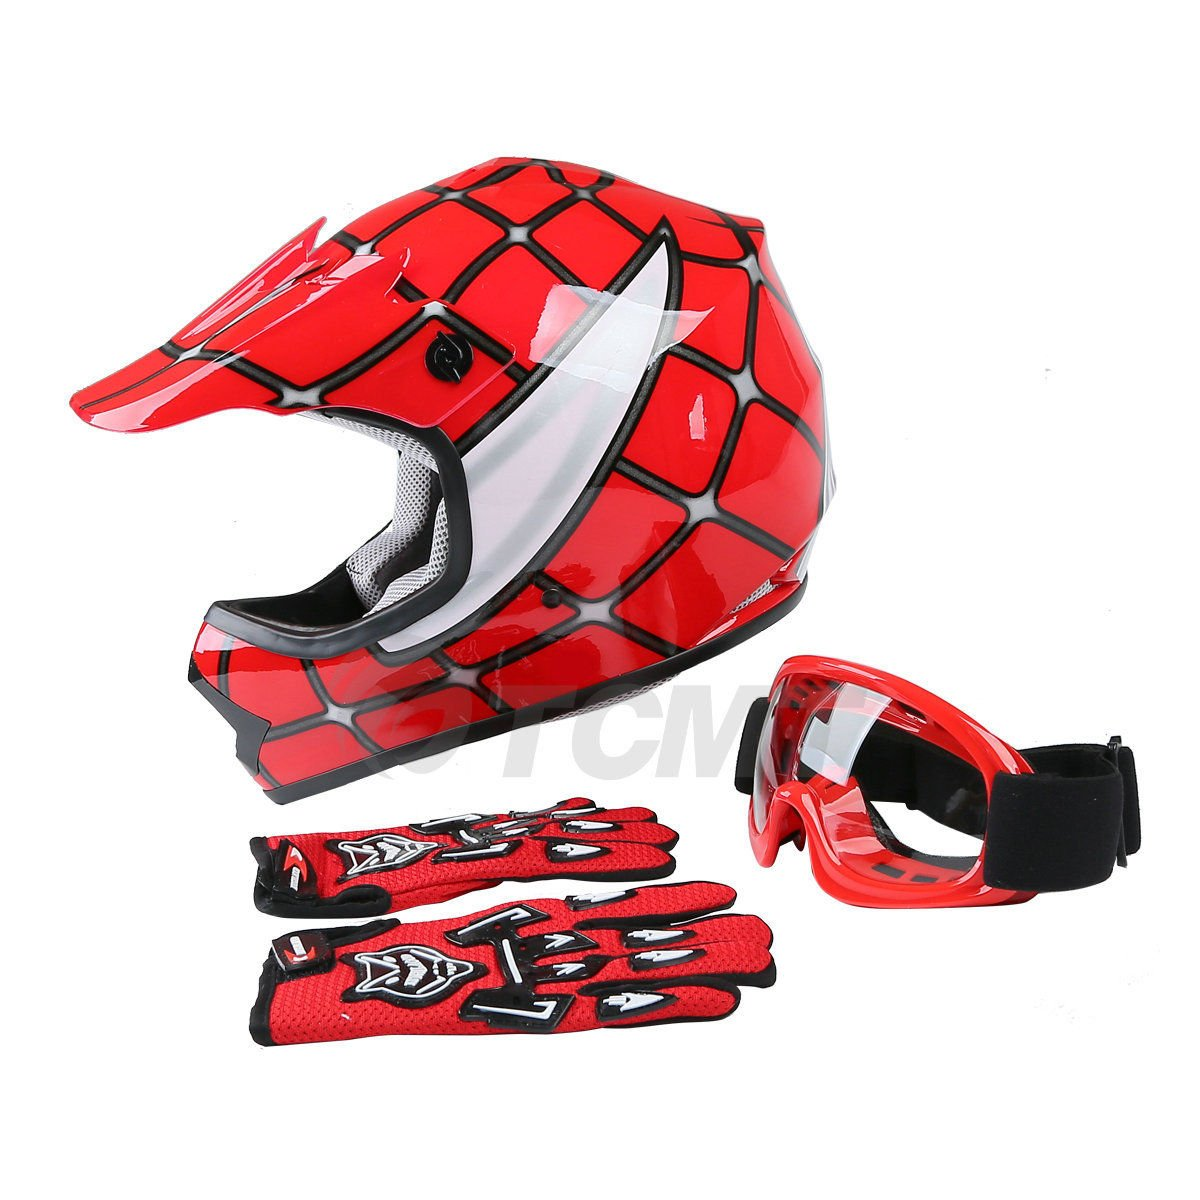 TCMT Motocross Offroad Off Road Goggles